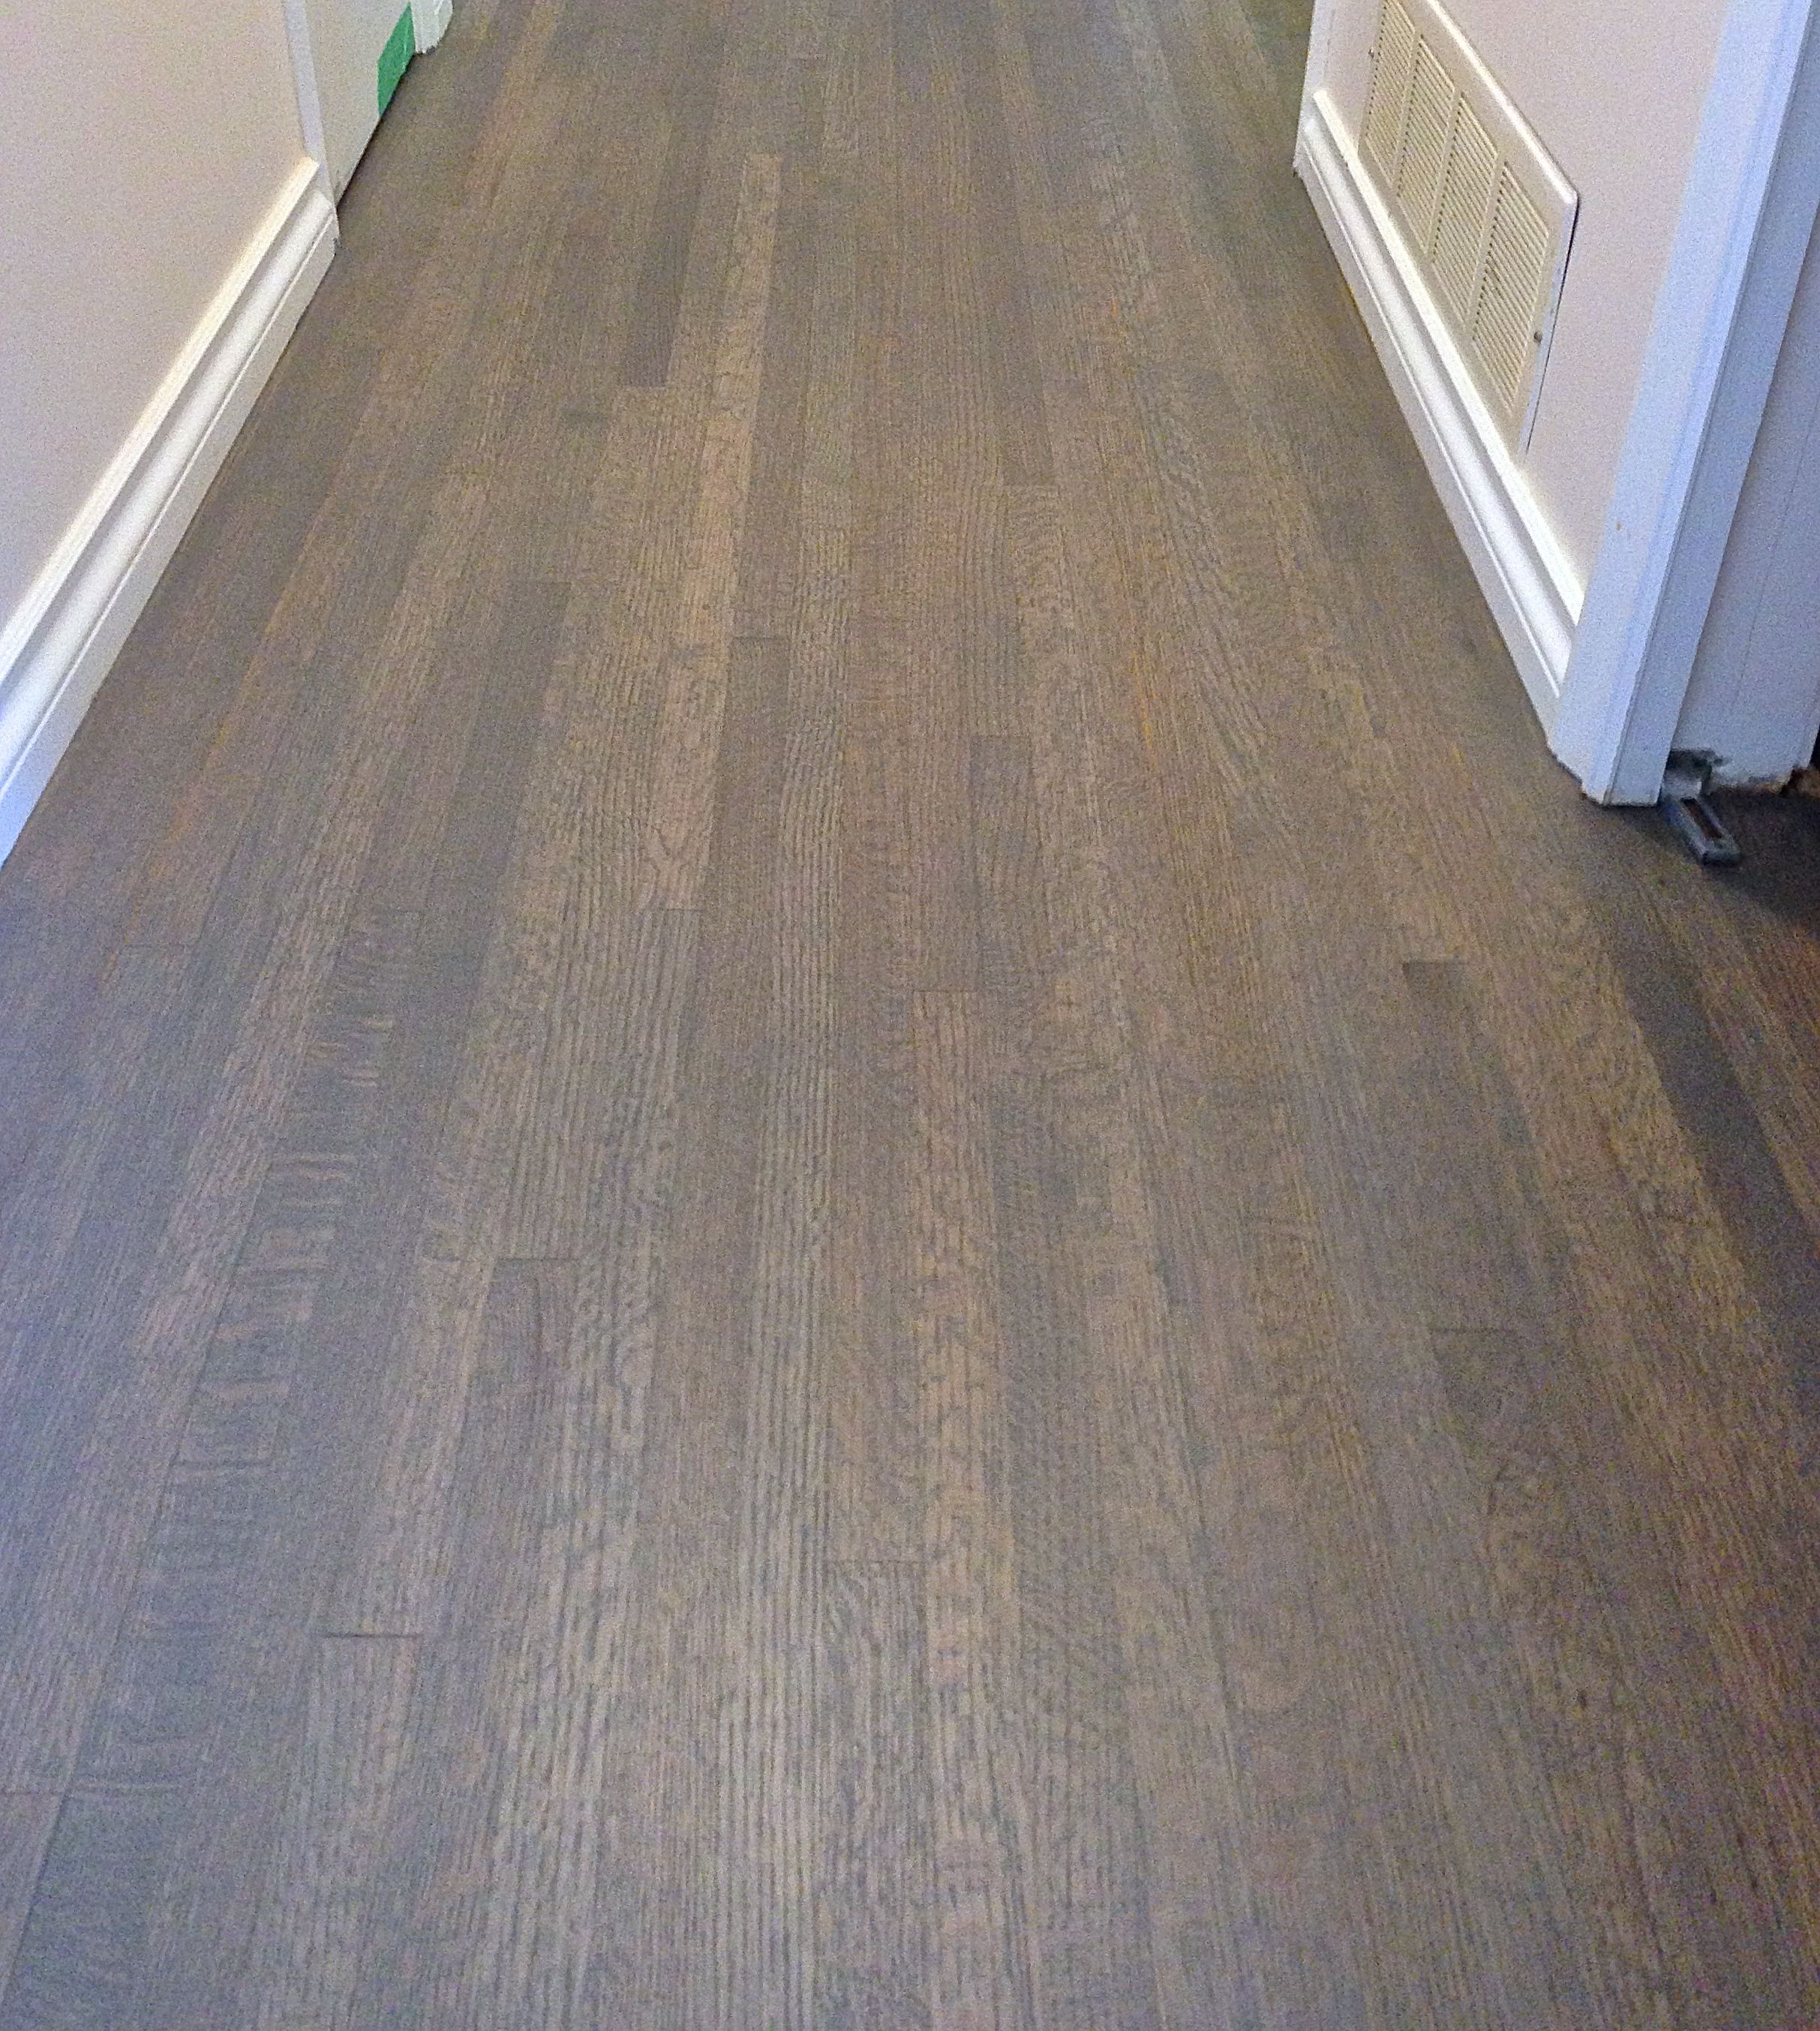 Red Oak Hardwood Floor Custom Stained A Grey Mix Colour Finished With Satin Water Based Finish